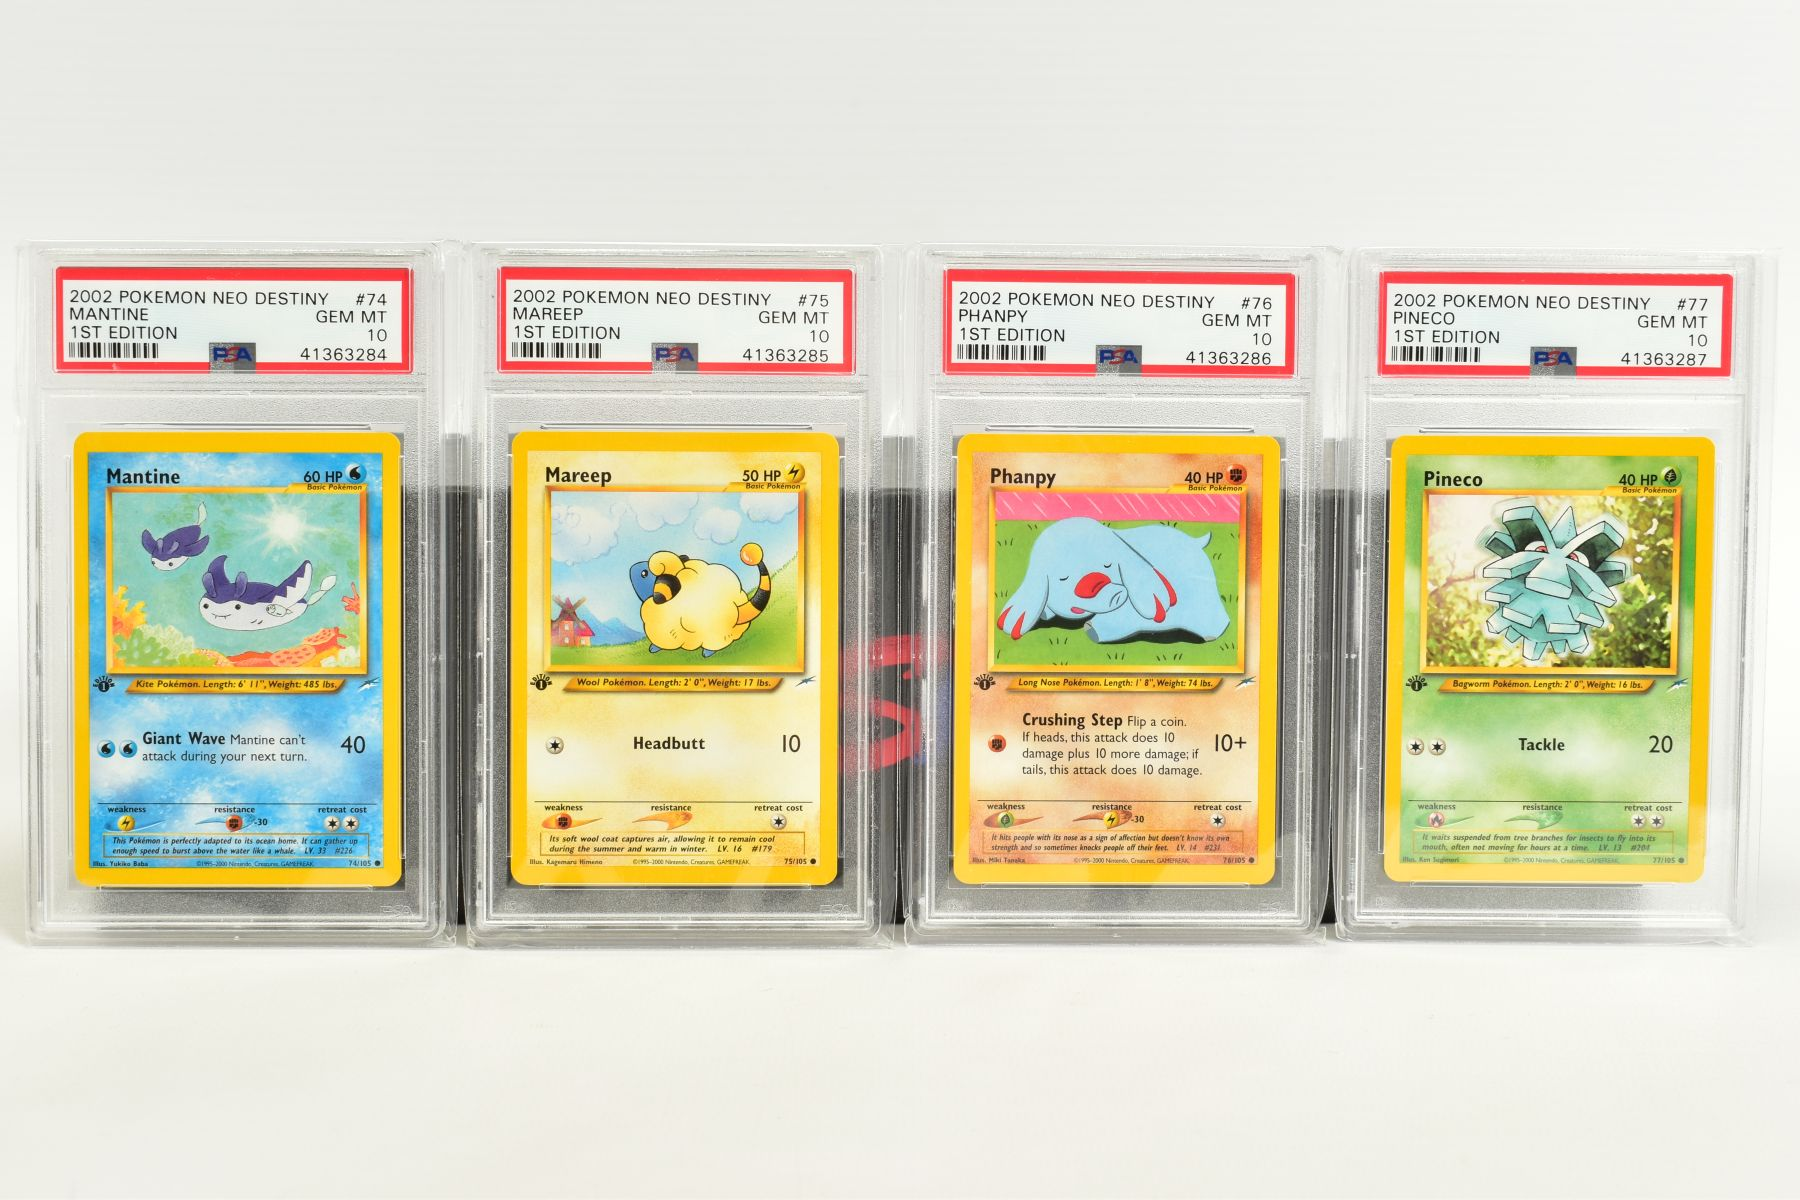 A QUANTITY OF PSA GRADED POKEMON 1ST EDITION NEO DESTINY SET CARDS, all are graded GEM MINT 10 and - Image 5 of 7